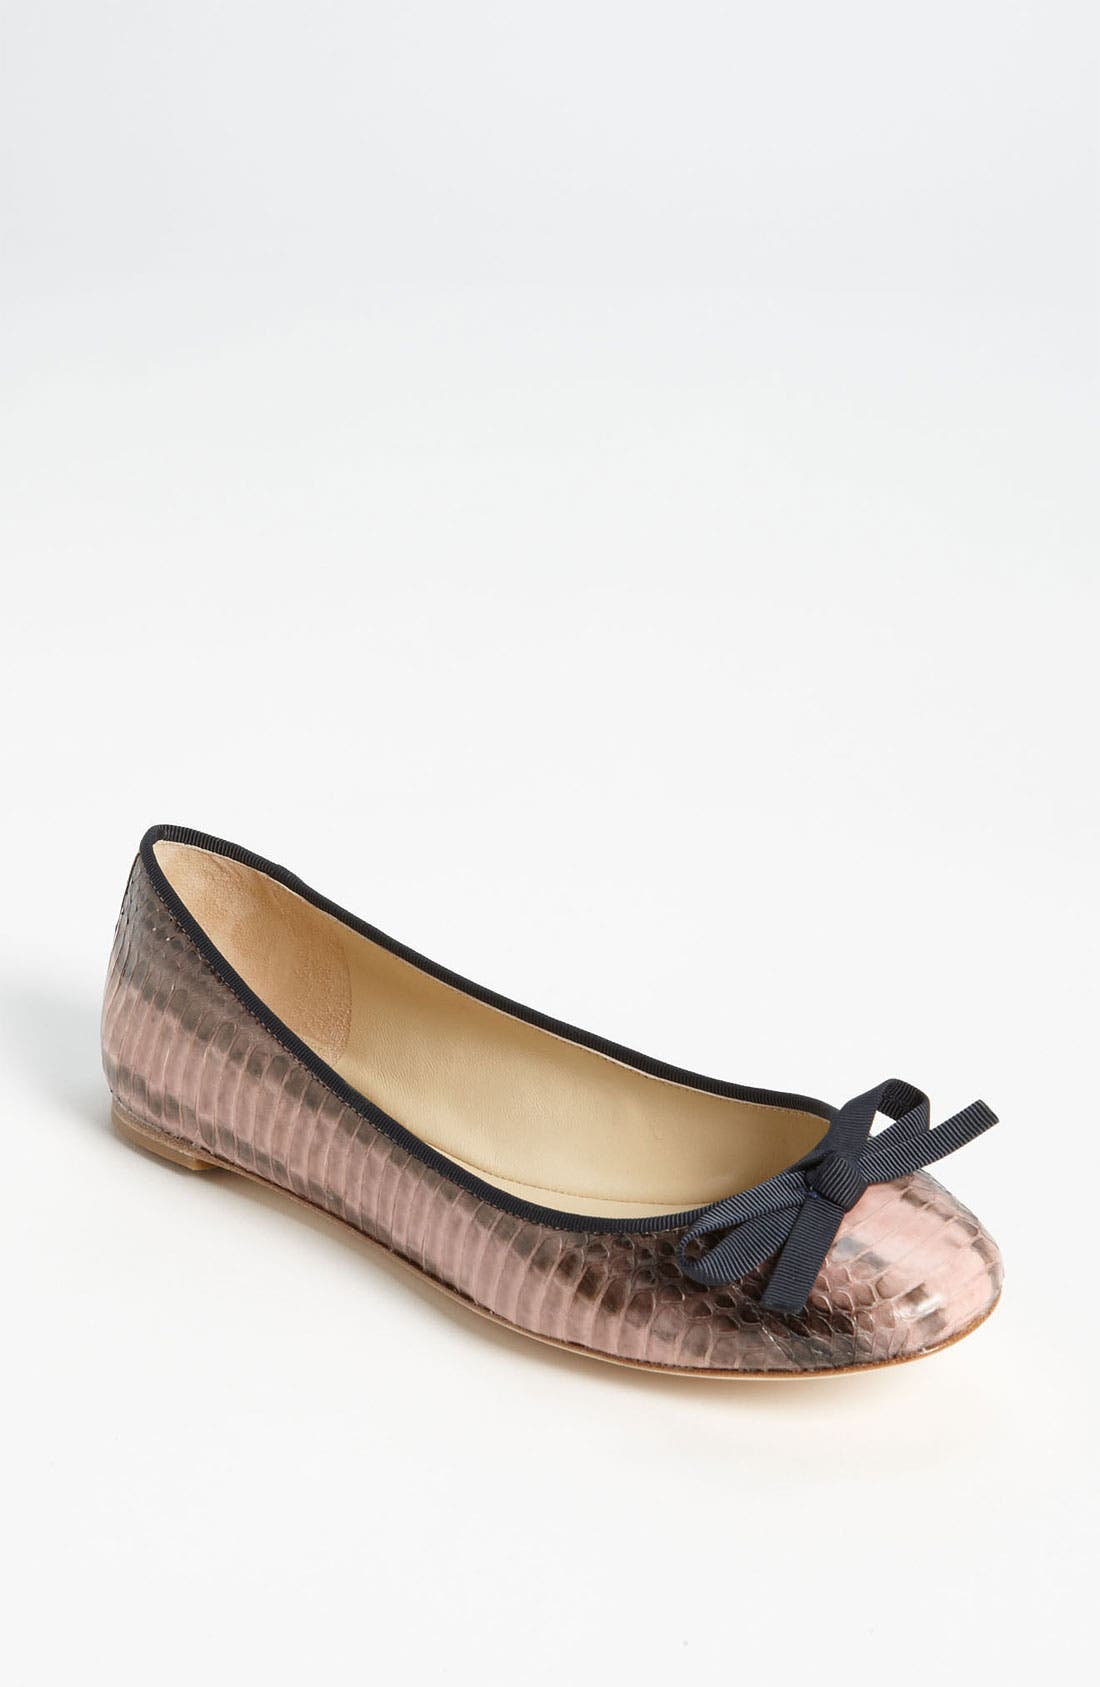 Alternate Image 1 Selected - Vera Wang Footwear 'Laetitia' Flat (Online Only)